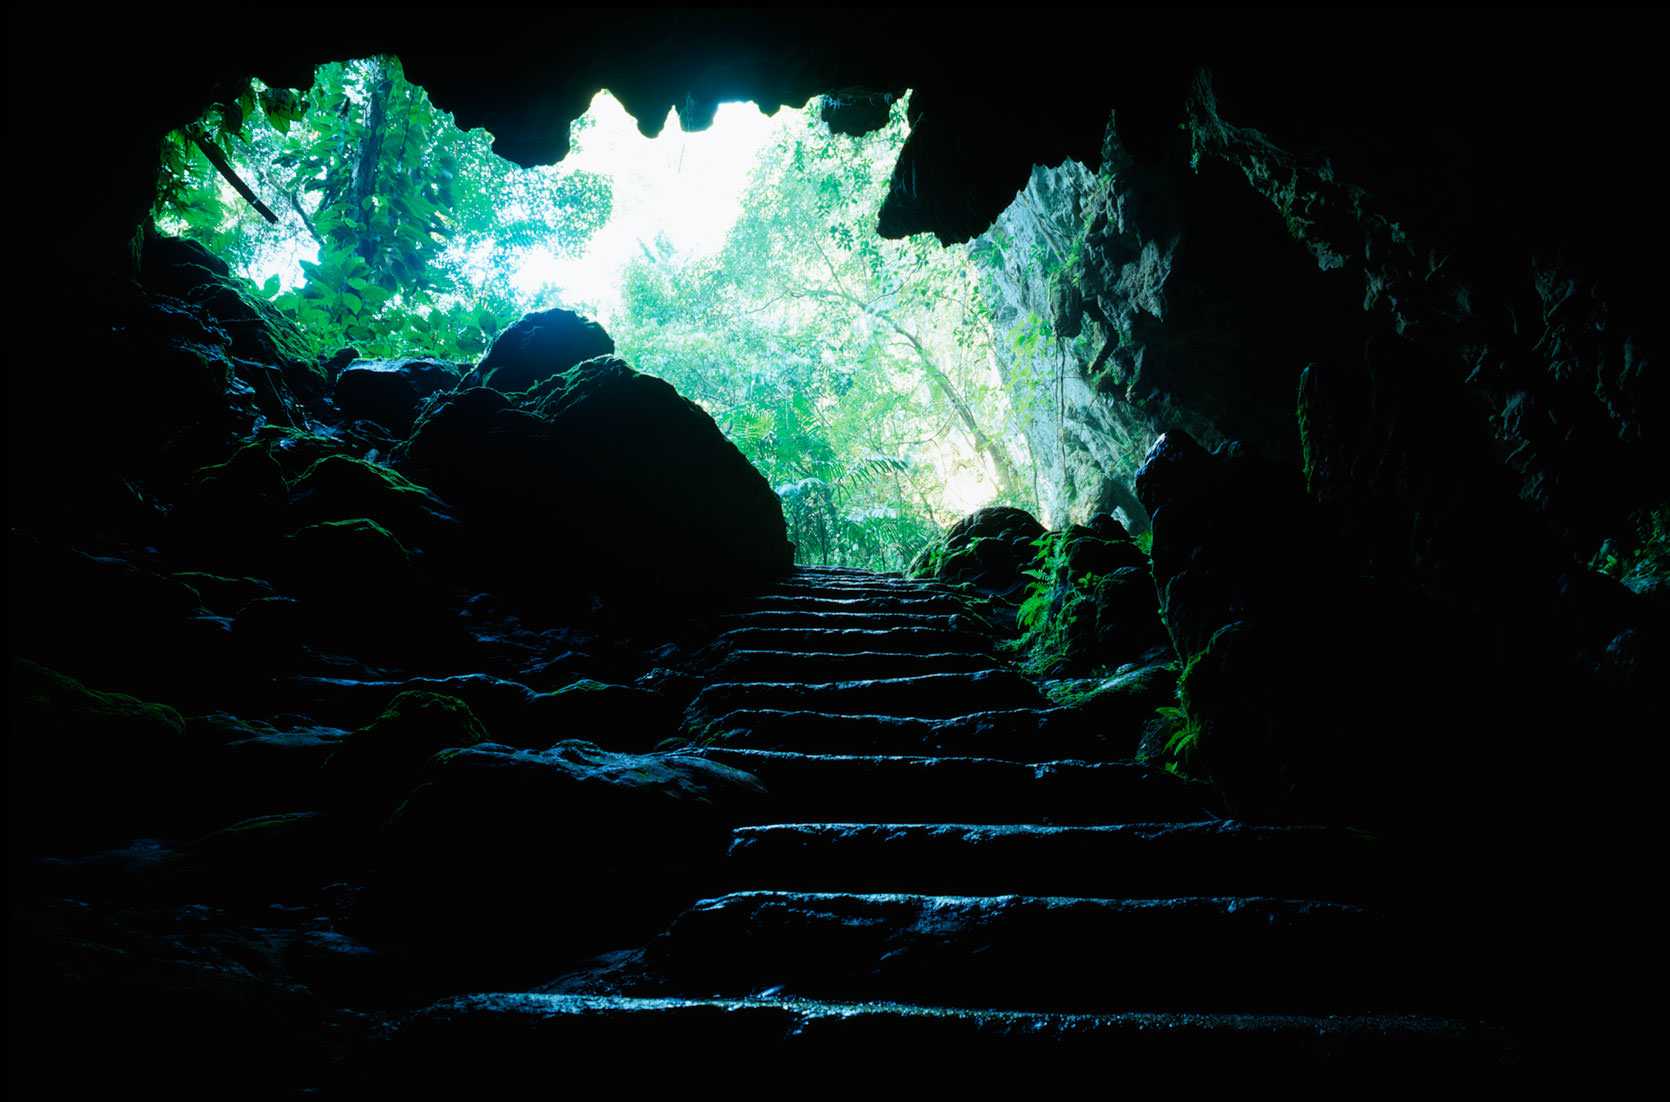 The Herman's Cave entrance in Southern Belize, a part of the Blue Hole National Park.